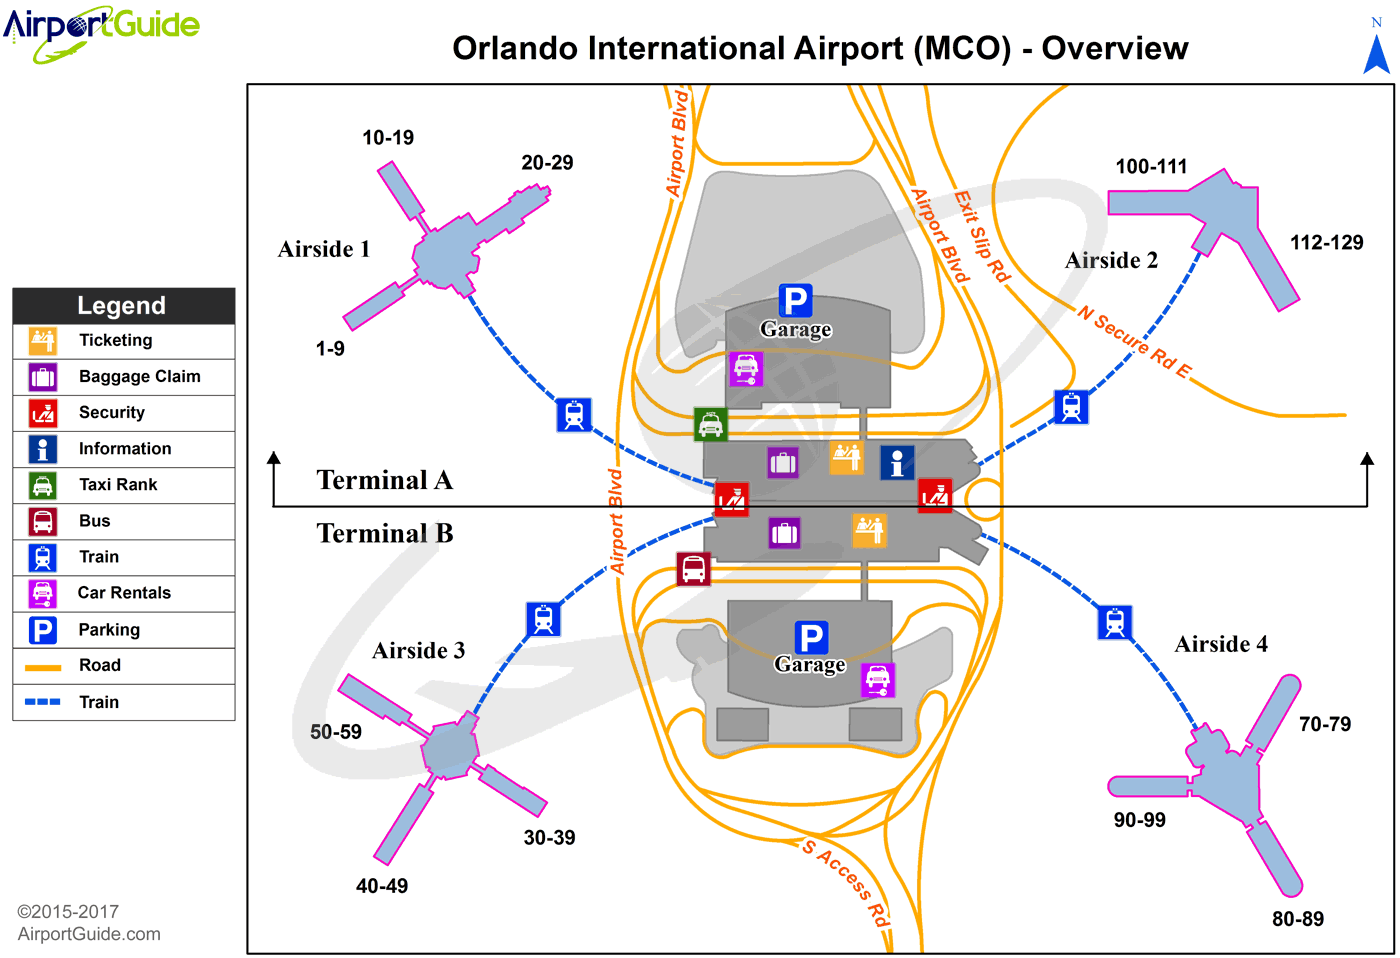 Orlando - Orlando International (MCO) Airport Terminal Map - Overview